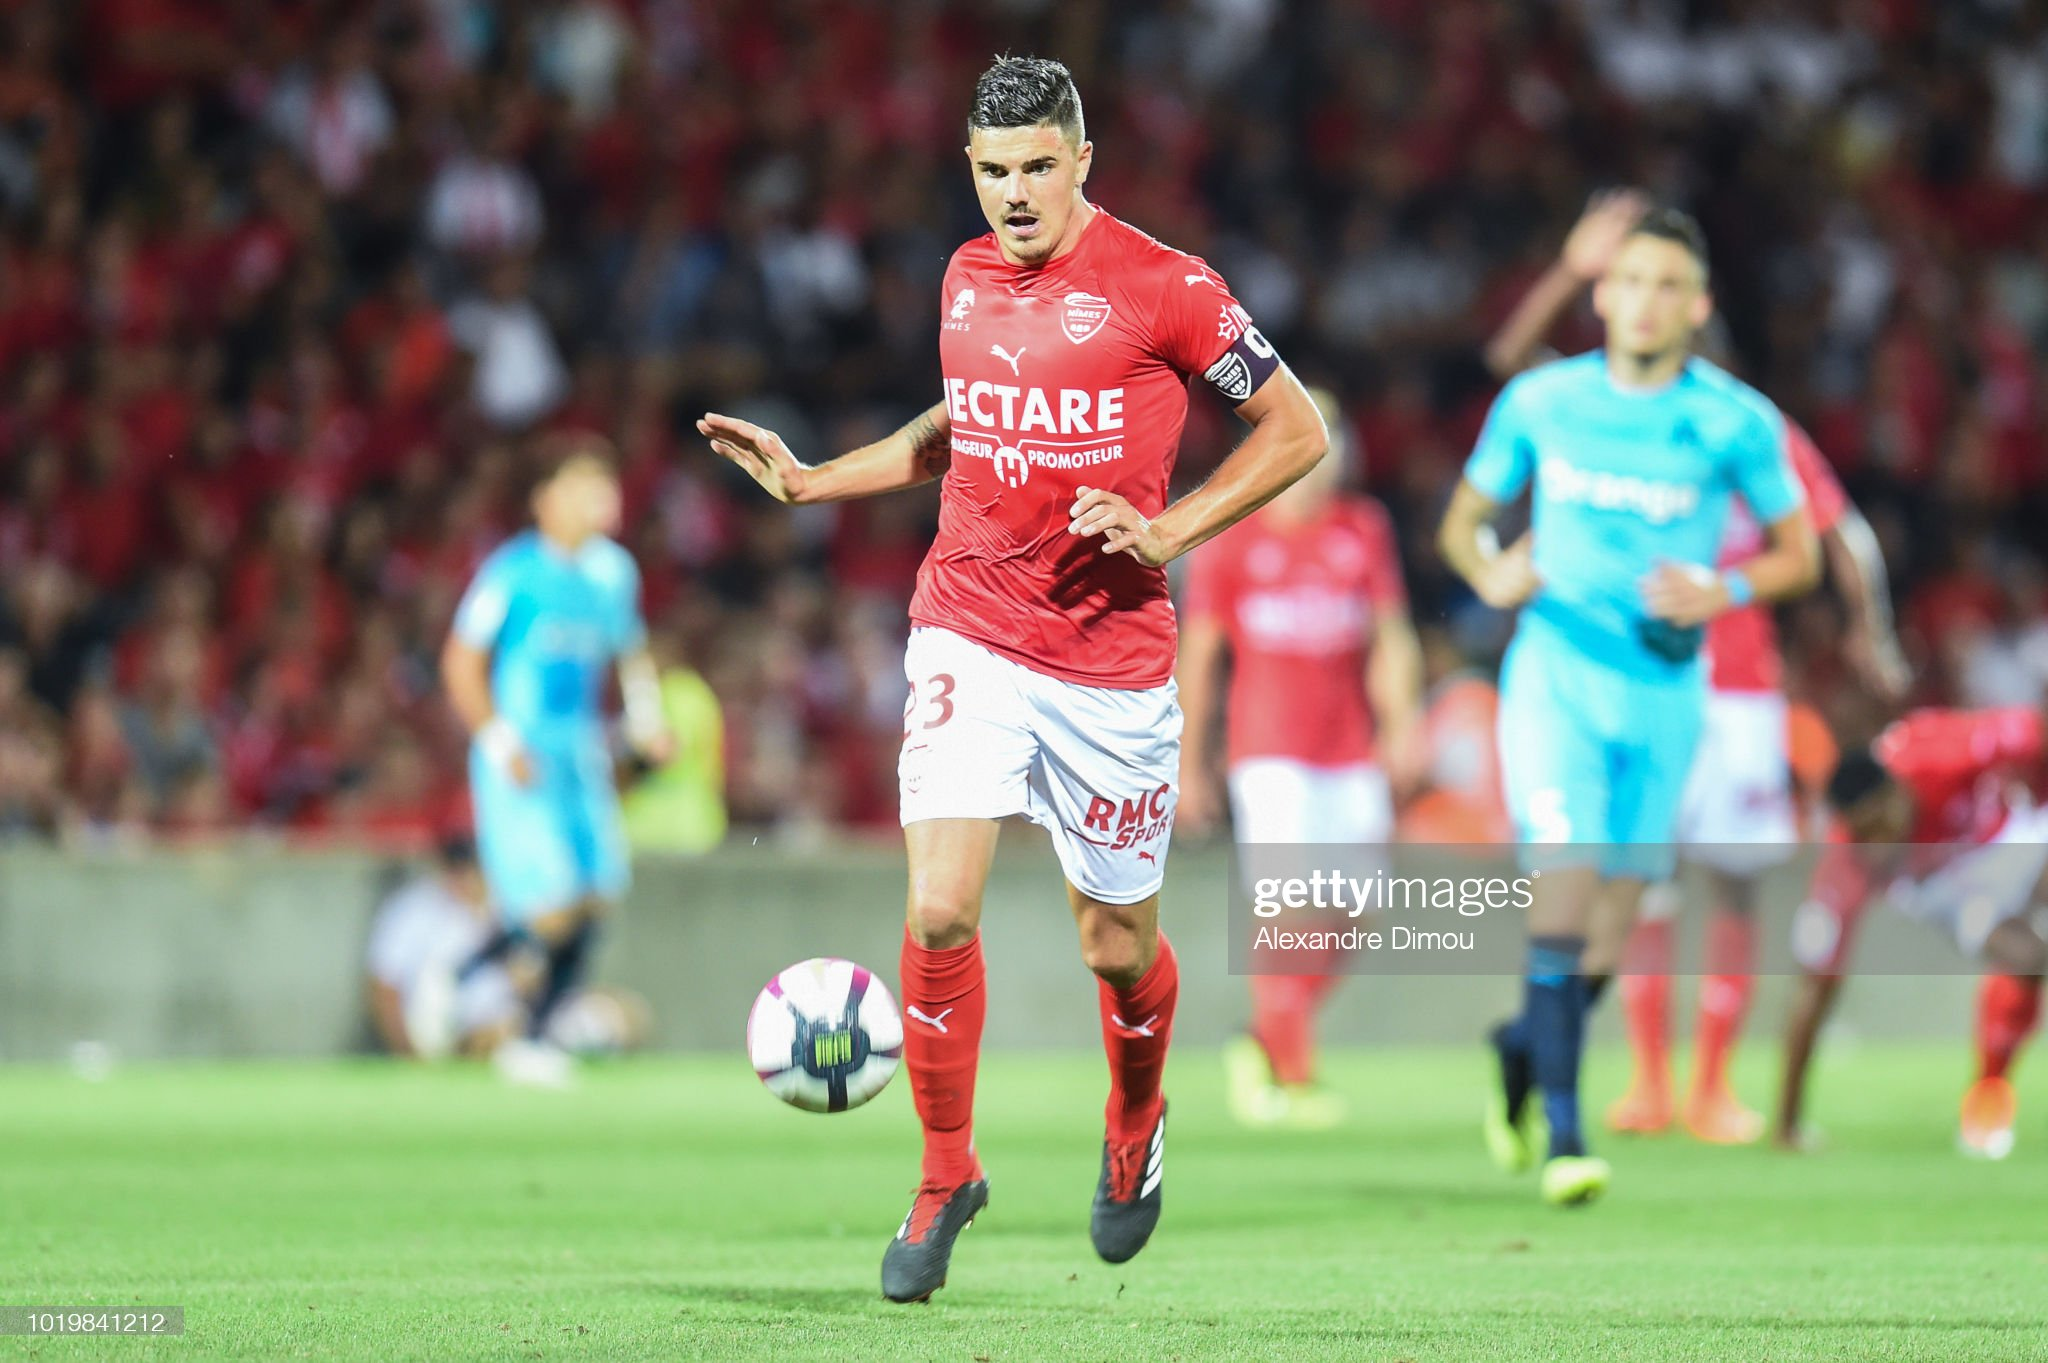 32 EME JOURNEE DE LIGUE 1 CONFORAMA : OM - NO  Anthony-briancon-of-nimes-during-the-french-ligue-1-match-between-picture-id1019841212?s=2048x2048